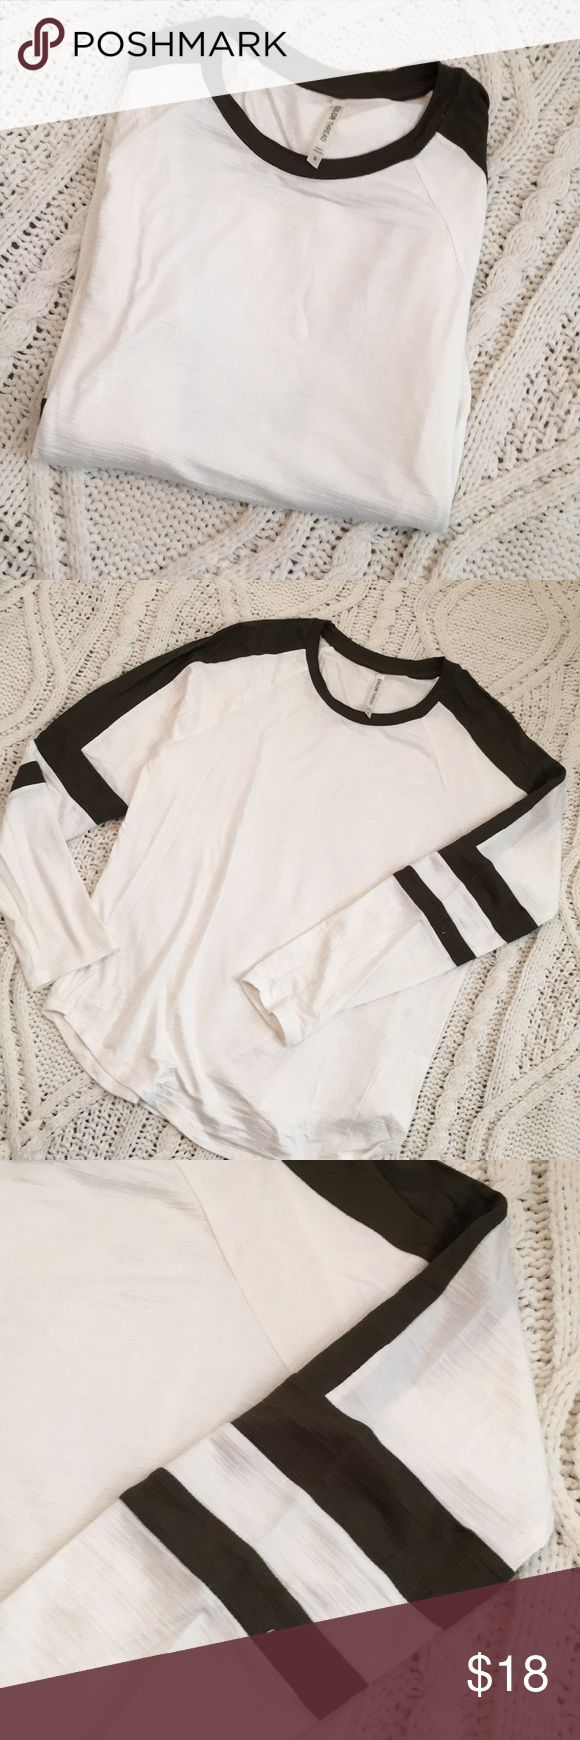 Never Worn Hunter Green and White Baseball Tee Never worn white and hunter green long sleeve baseball style tee. Size small, but will fit XS for a looser look! Tops Tees - Long Sleeve